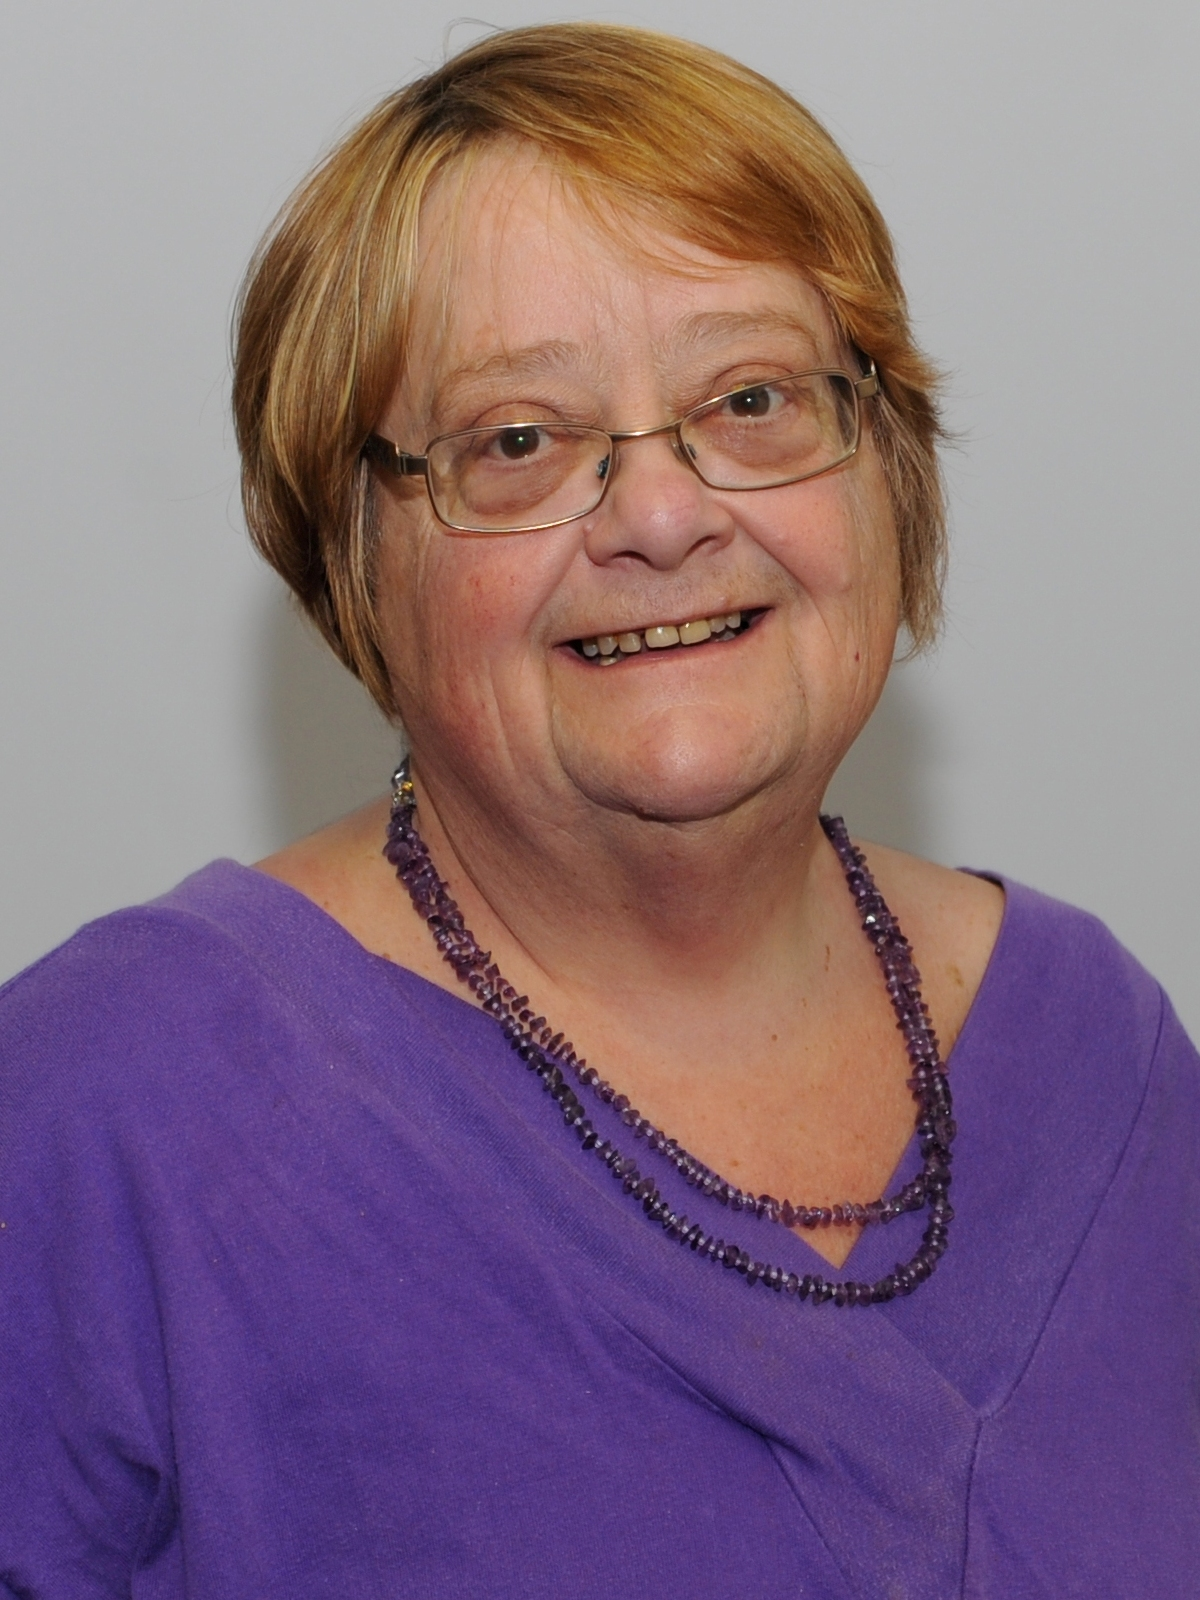 CLLR SIAN THOMAS: Dispu